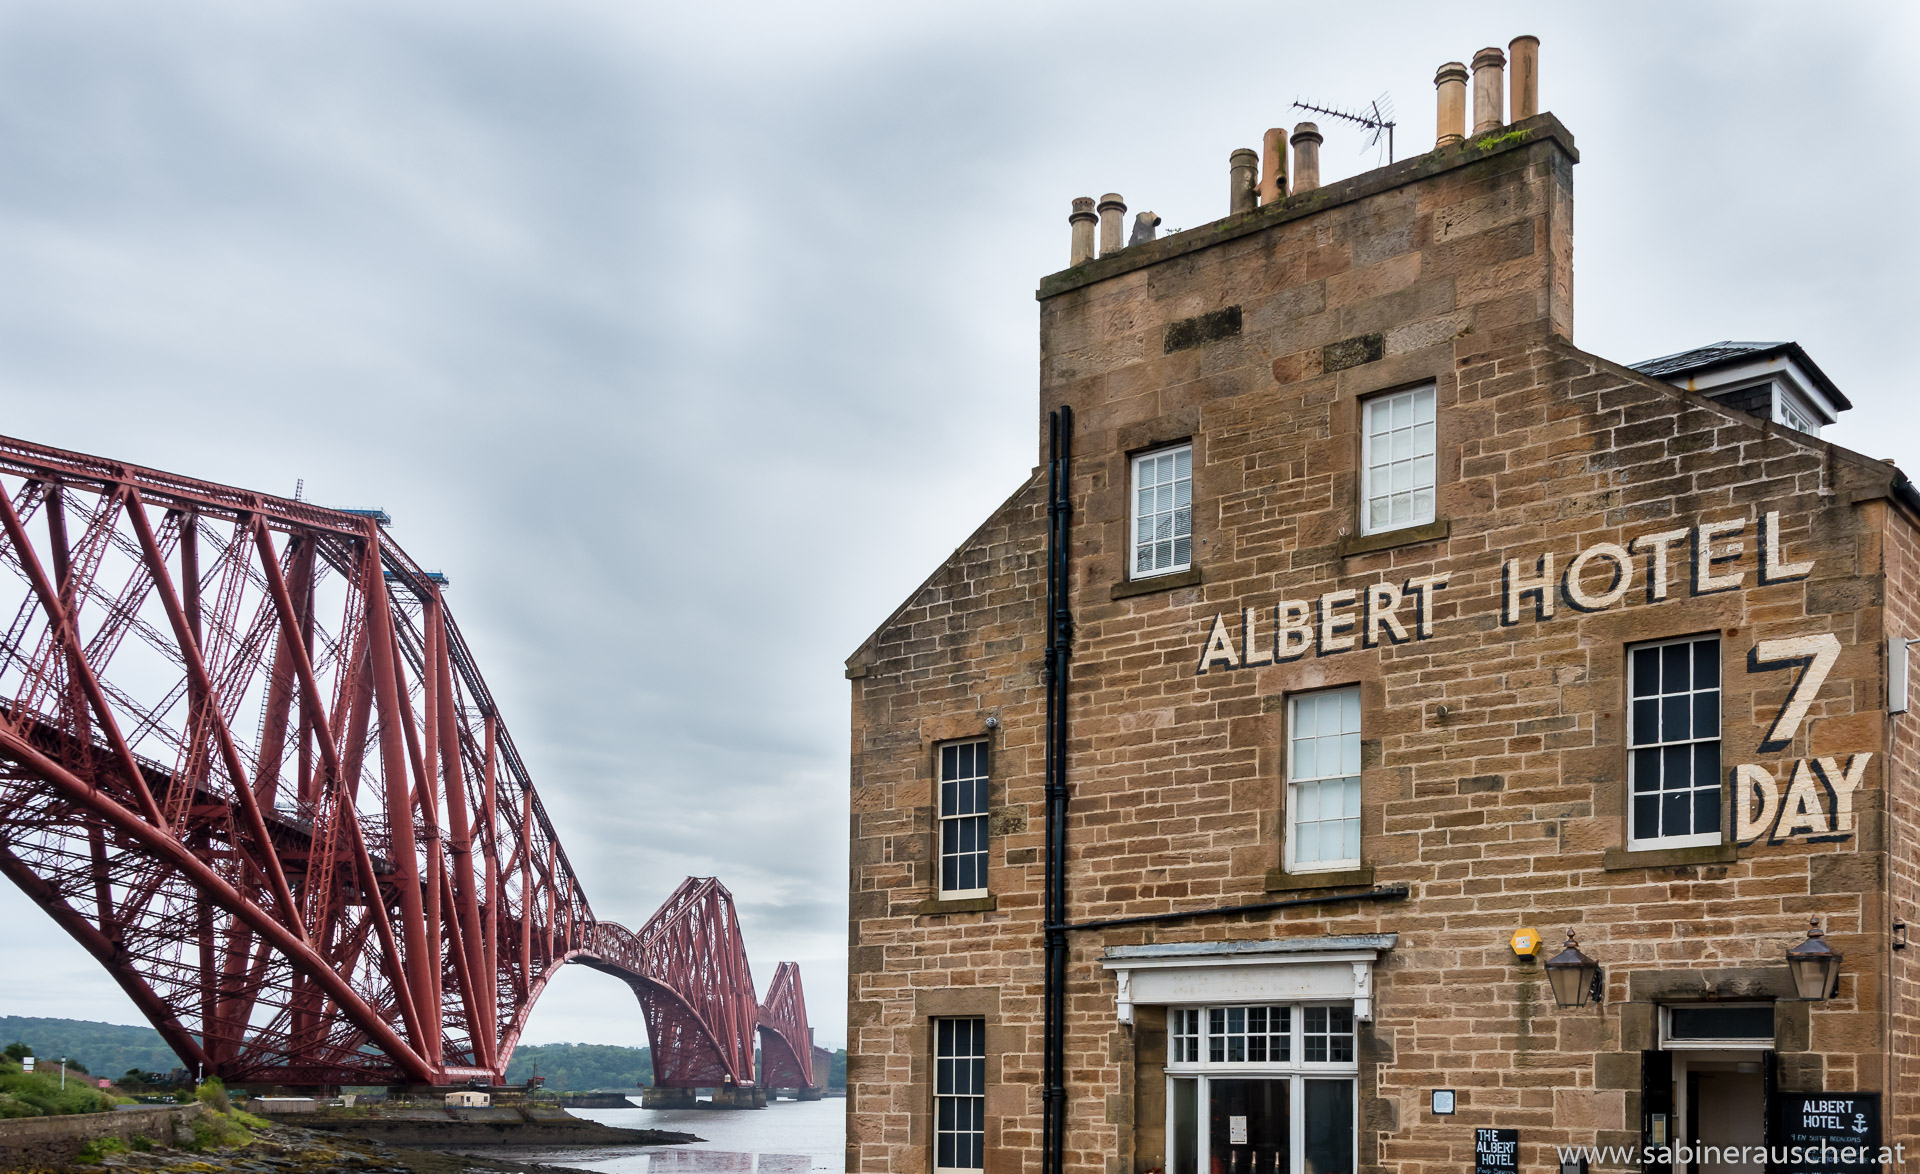 Albert Hotel in North Queensferry near the Forth Rail Bridge in Scotland | North Queensferry - Albert Hotel an der Forth Rail Bridge in Schottland